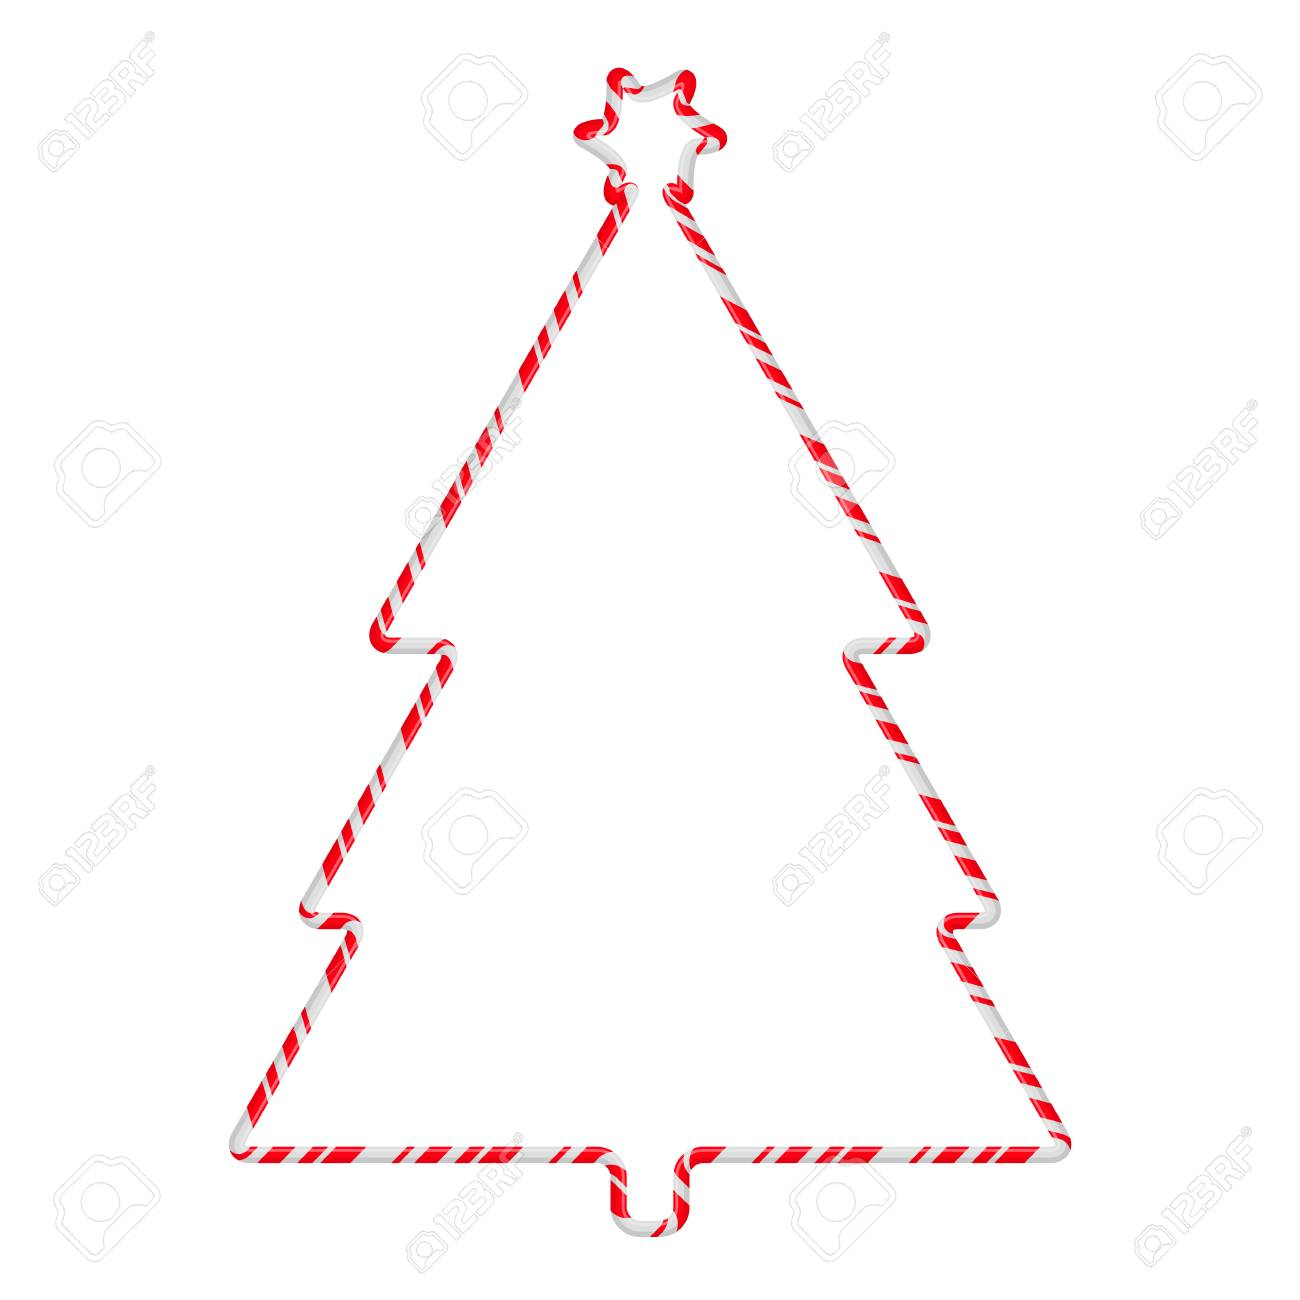 hight resolution of candy cane frame border tree shape vector christmas design isolated on white background stock vector